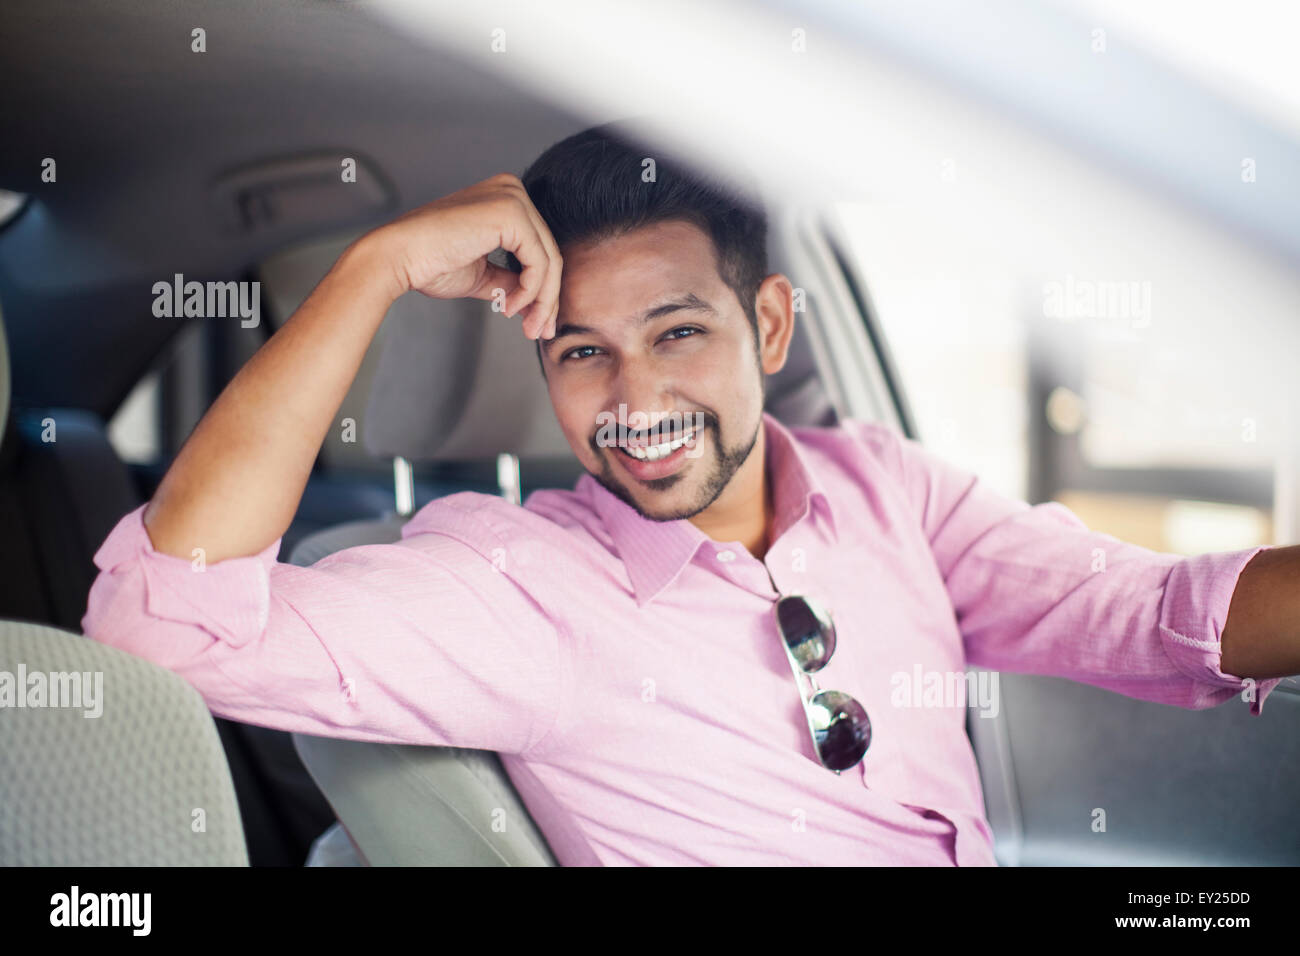 Portrait of young businessman in car - Stock Image